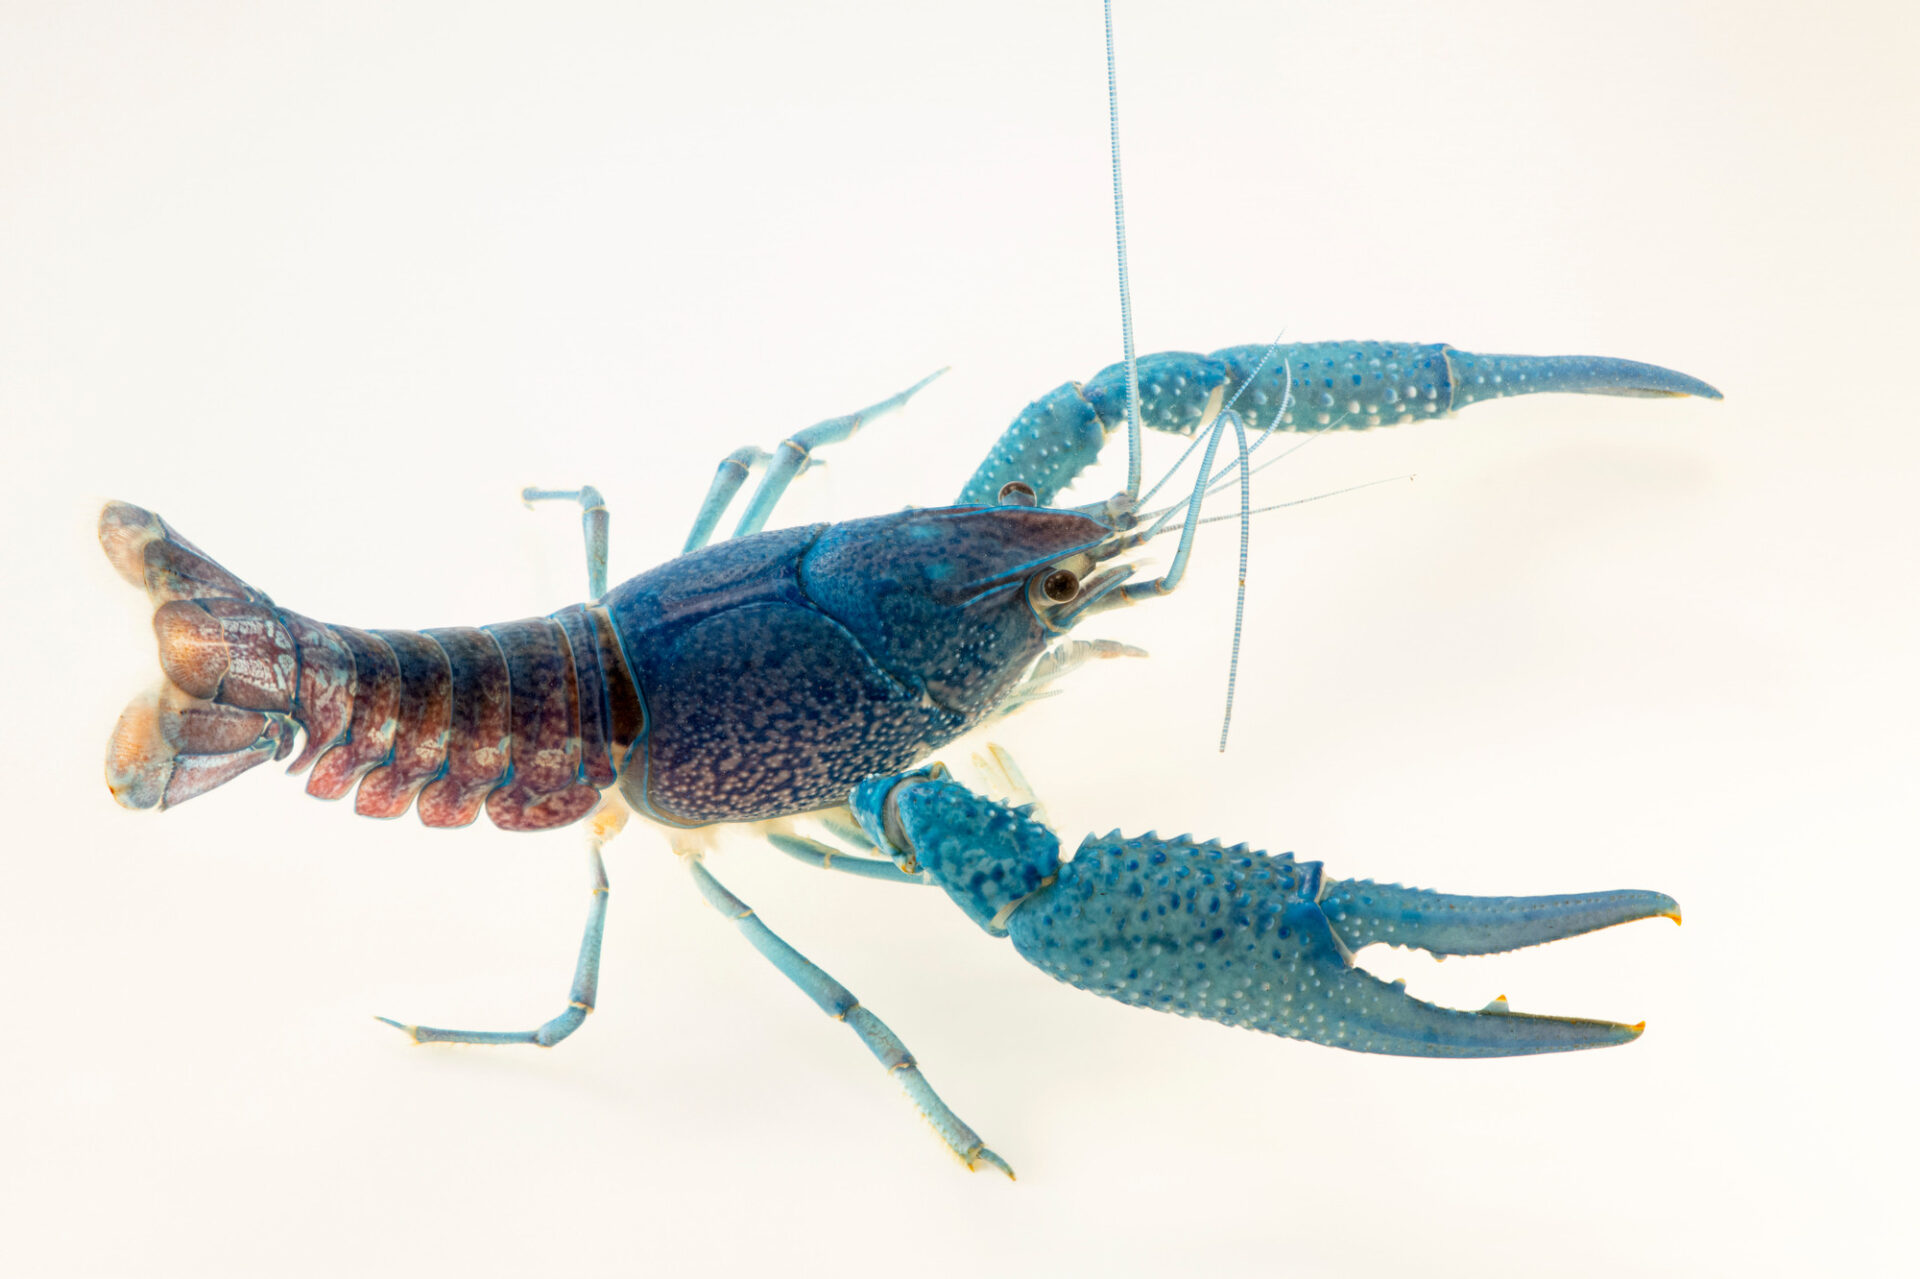 Photo: A blue crayfish or Peninsula crayfish (Procambarus paeninsulanus) at the Oklahoma Aquarium.